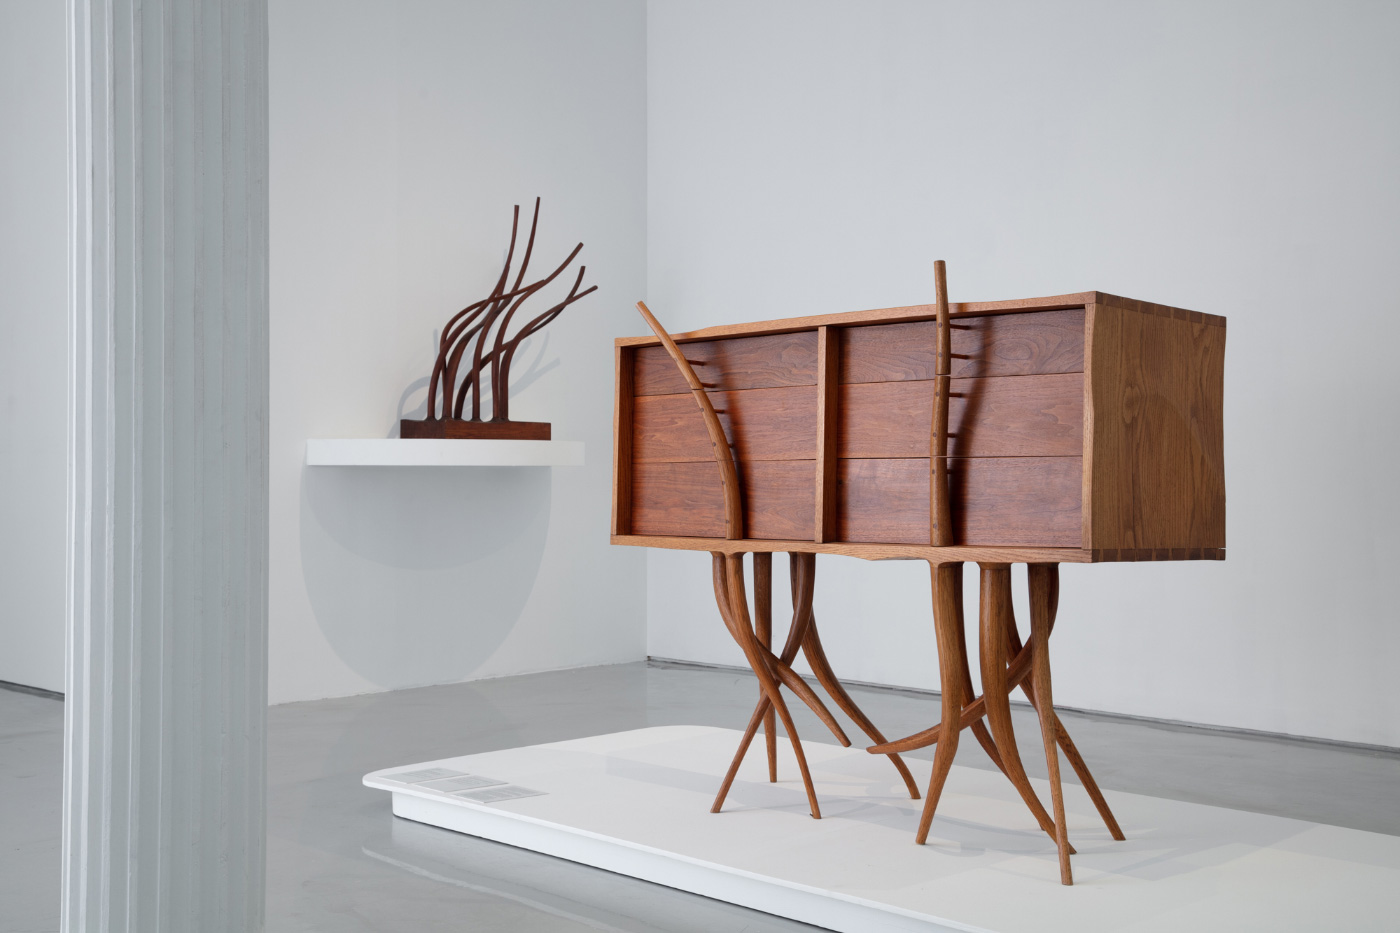 A Wendell Castle-designed dresser with branches for legs